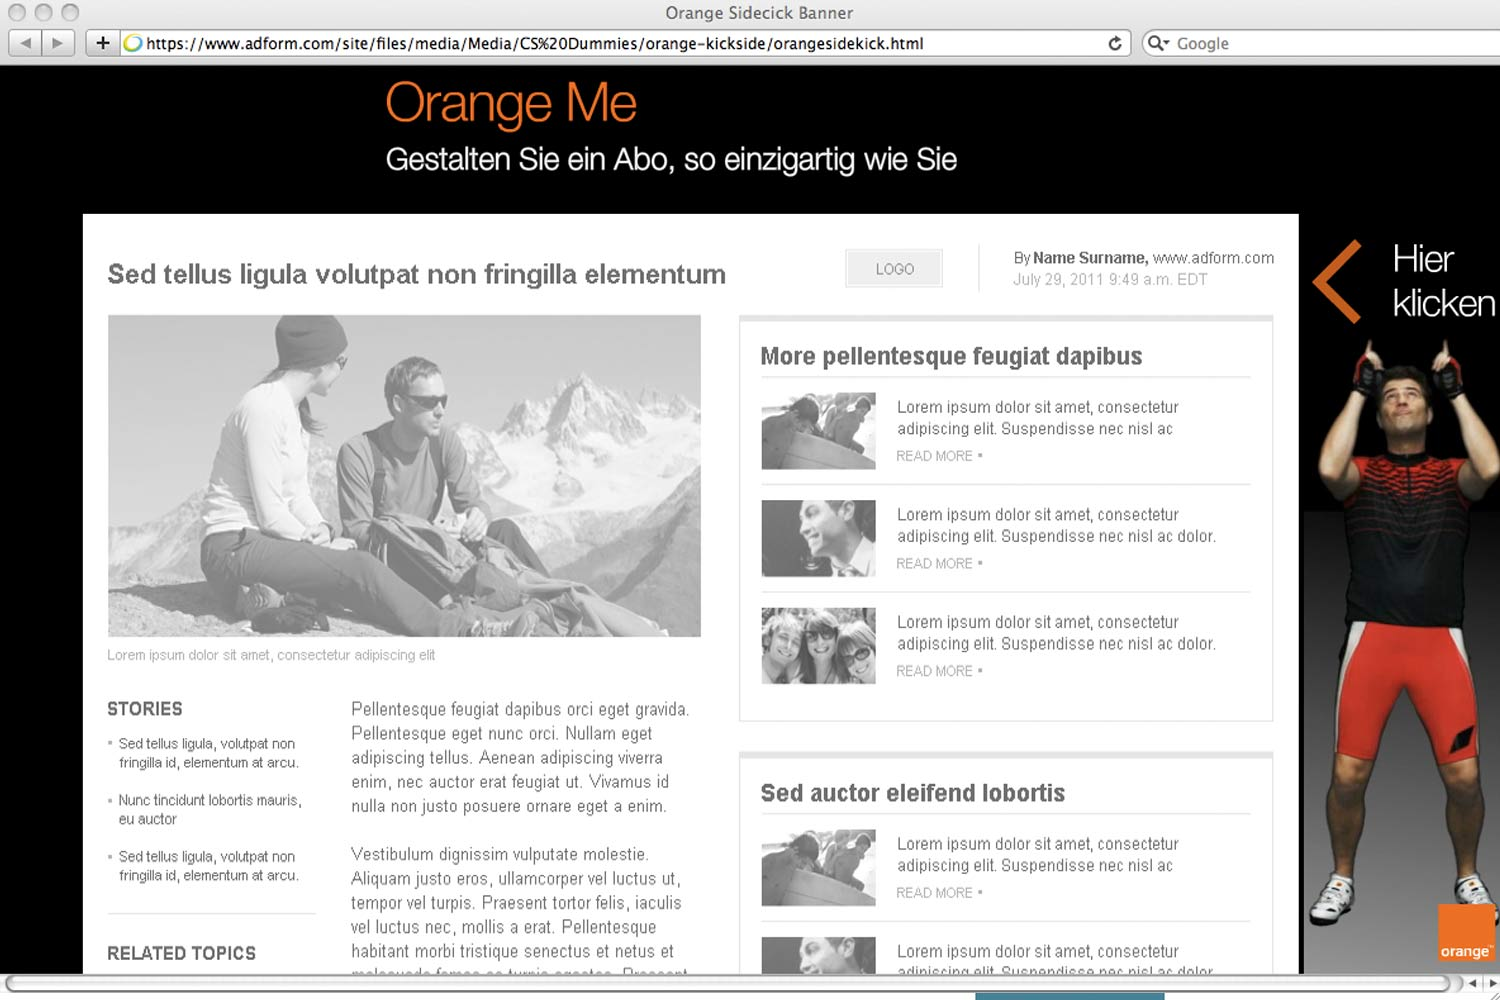 portfolio-web-banner-sidekick-orange-2.jpg